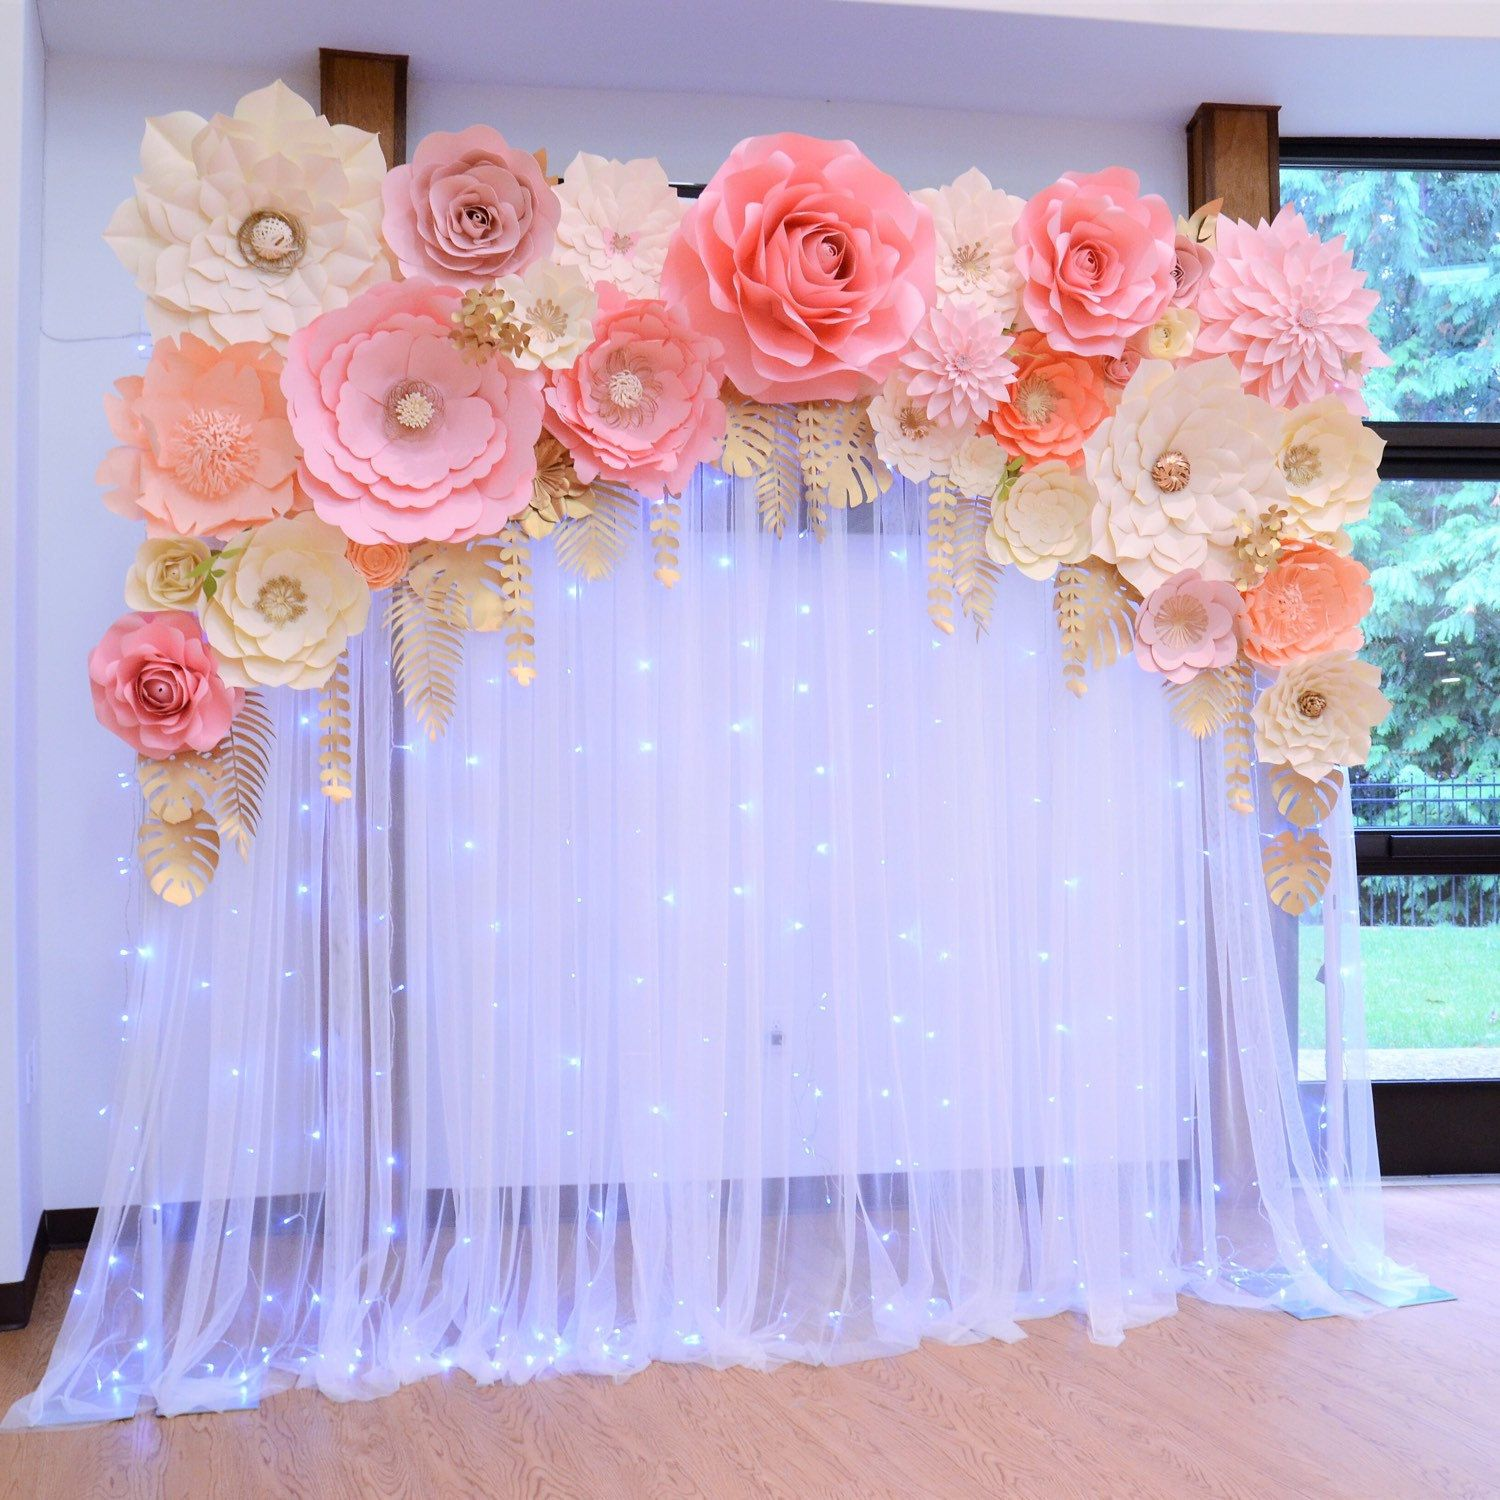 Flower Decorations: Giant Paper Flower Set To Cover 6 Ft Long Backdrop. White